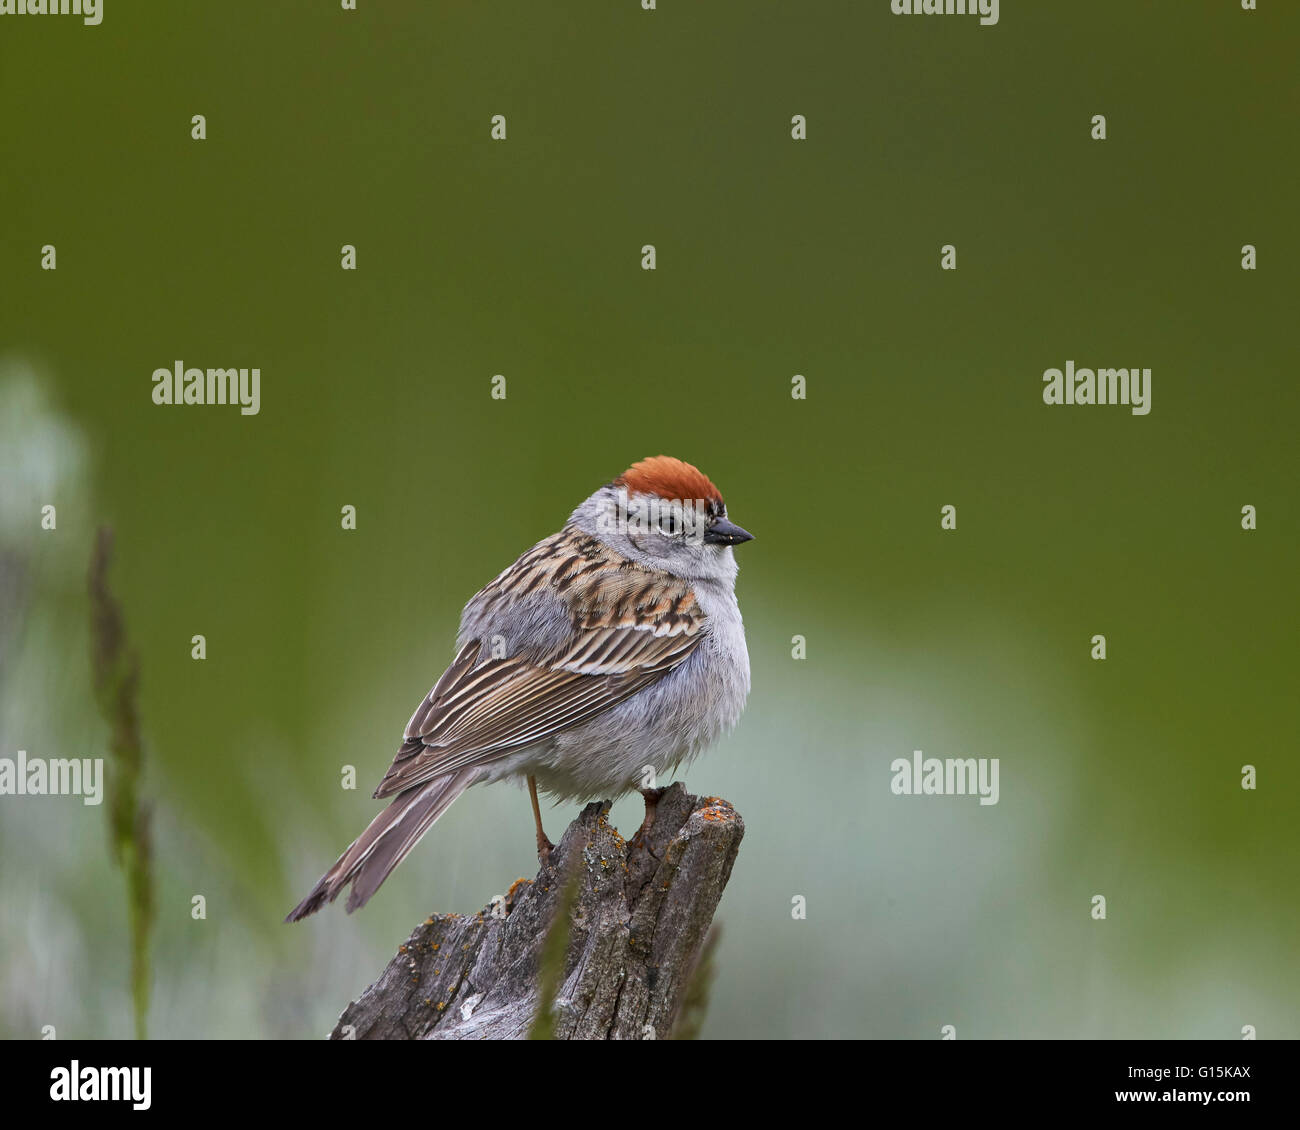 American Tree Sparrow (Spizella arborea), Yellowstone National Park, Wyoming, United States of America, North America - Stock Image